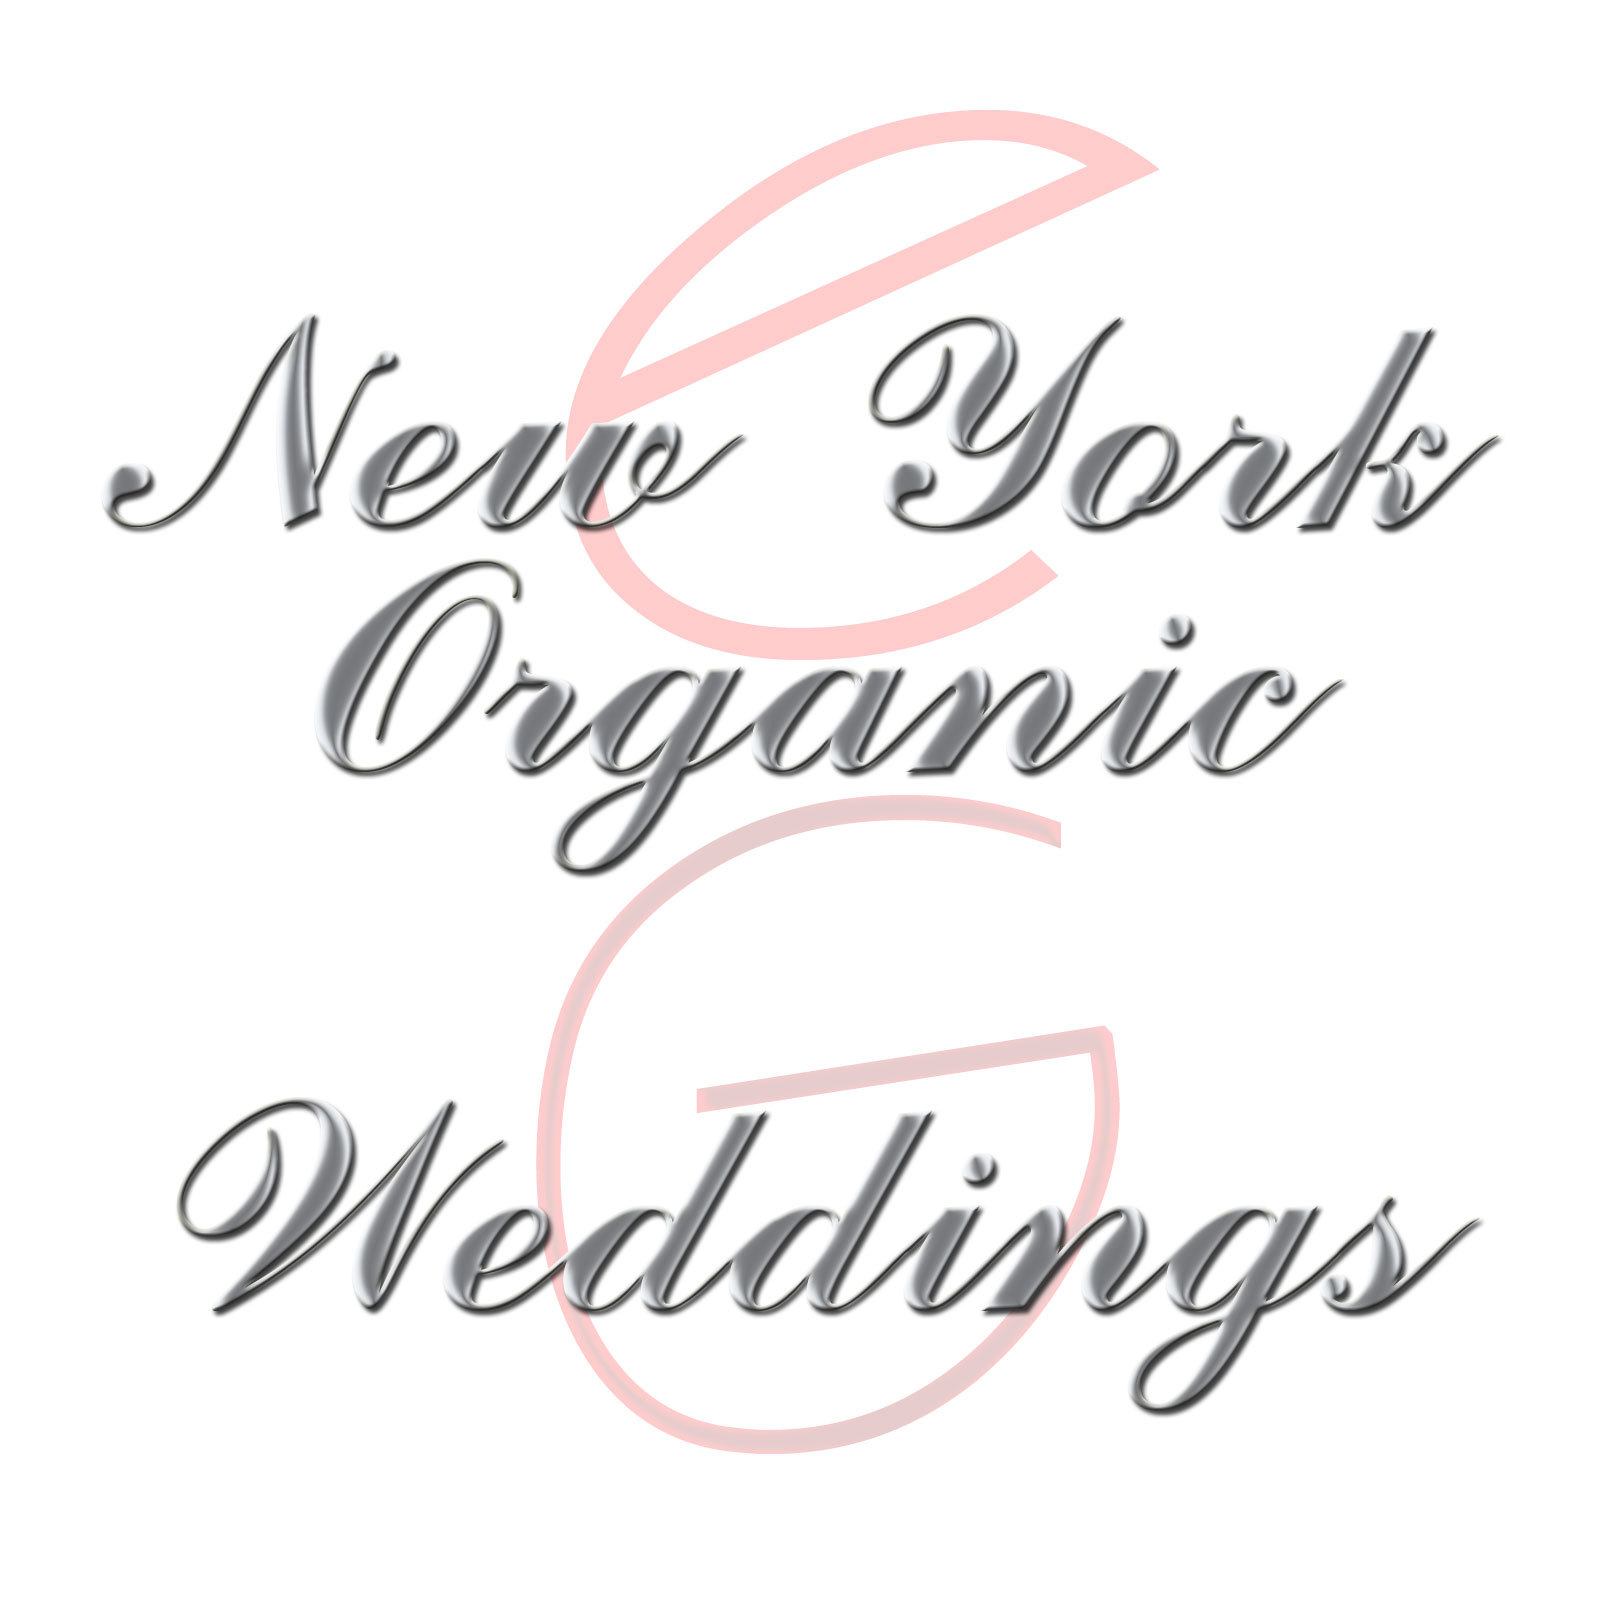 green, Weddings, York, New, Organic, Eco